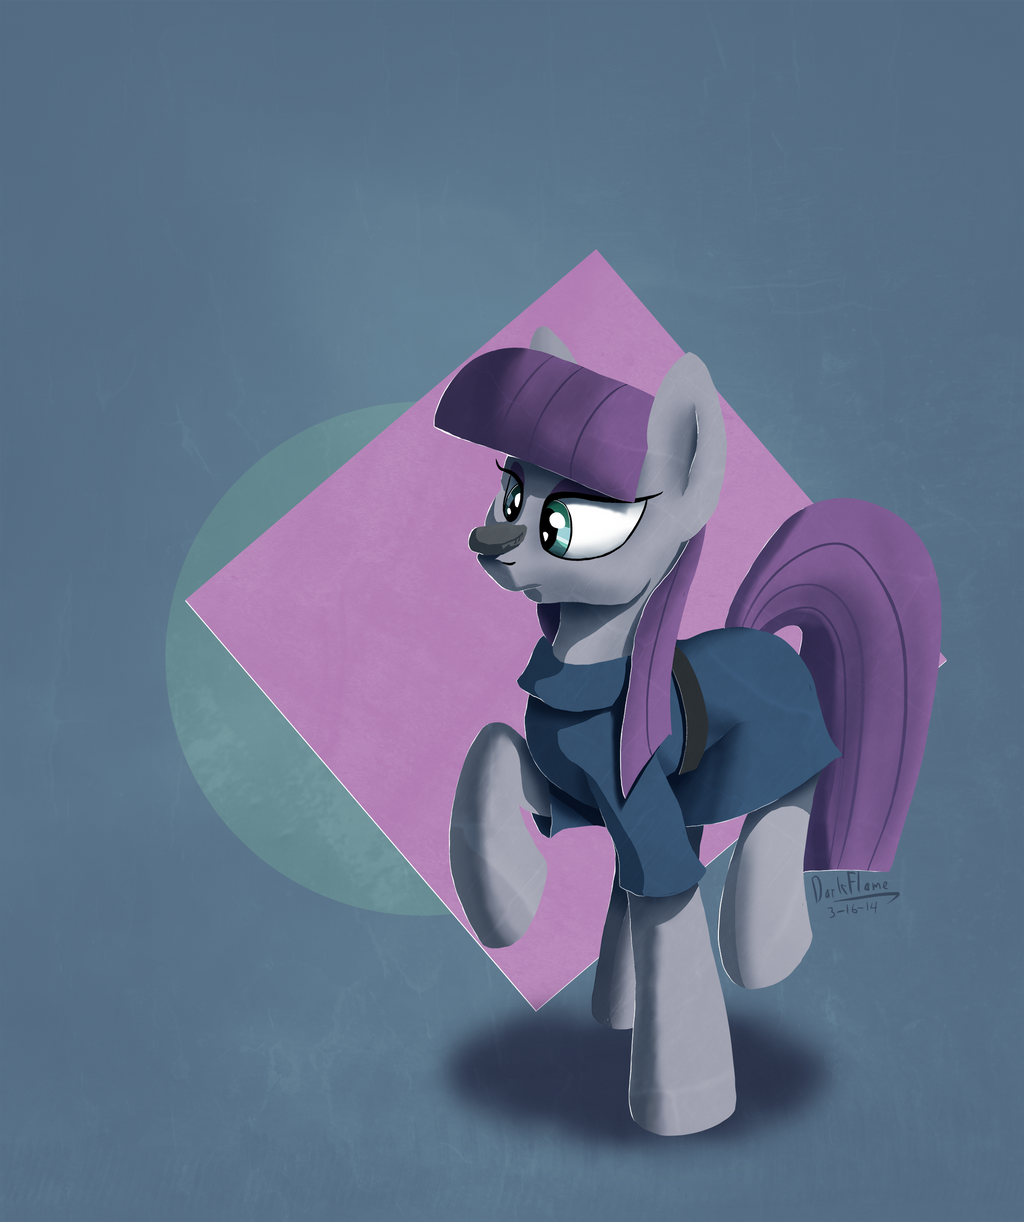 http://img01.deviantart.net/6687/i/2014/075/f/f/maud_pie_and_her_second_best_friend_by_darkflame75-d7ae7l5.png